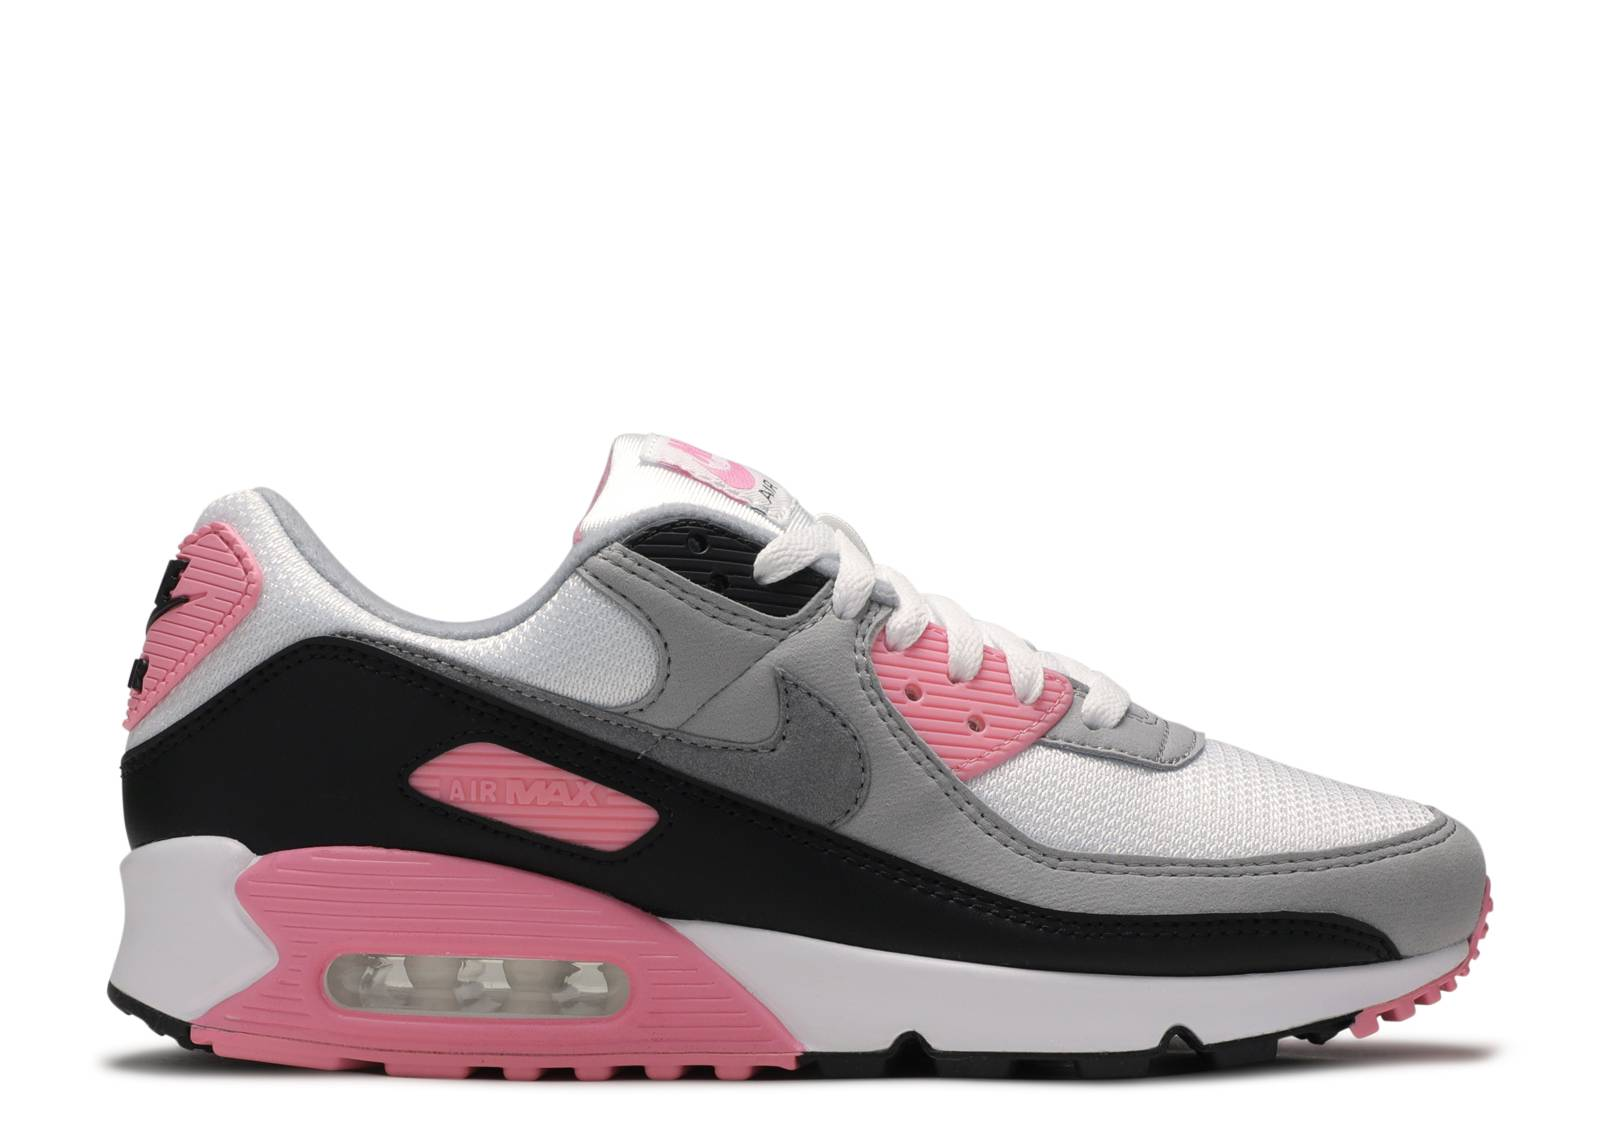 Fuerza Complaciente inversión  Wmns Air Max 90 'Rose Pink' - Nike - CD0490 102 - white/particle grey/light  smoke grey/rose pink | Flight Club